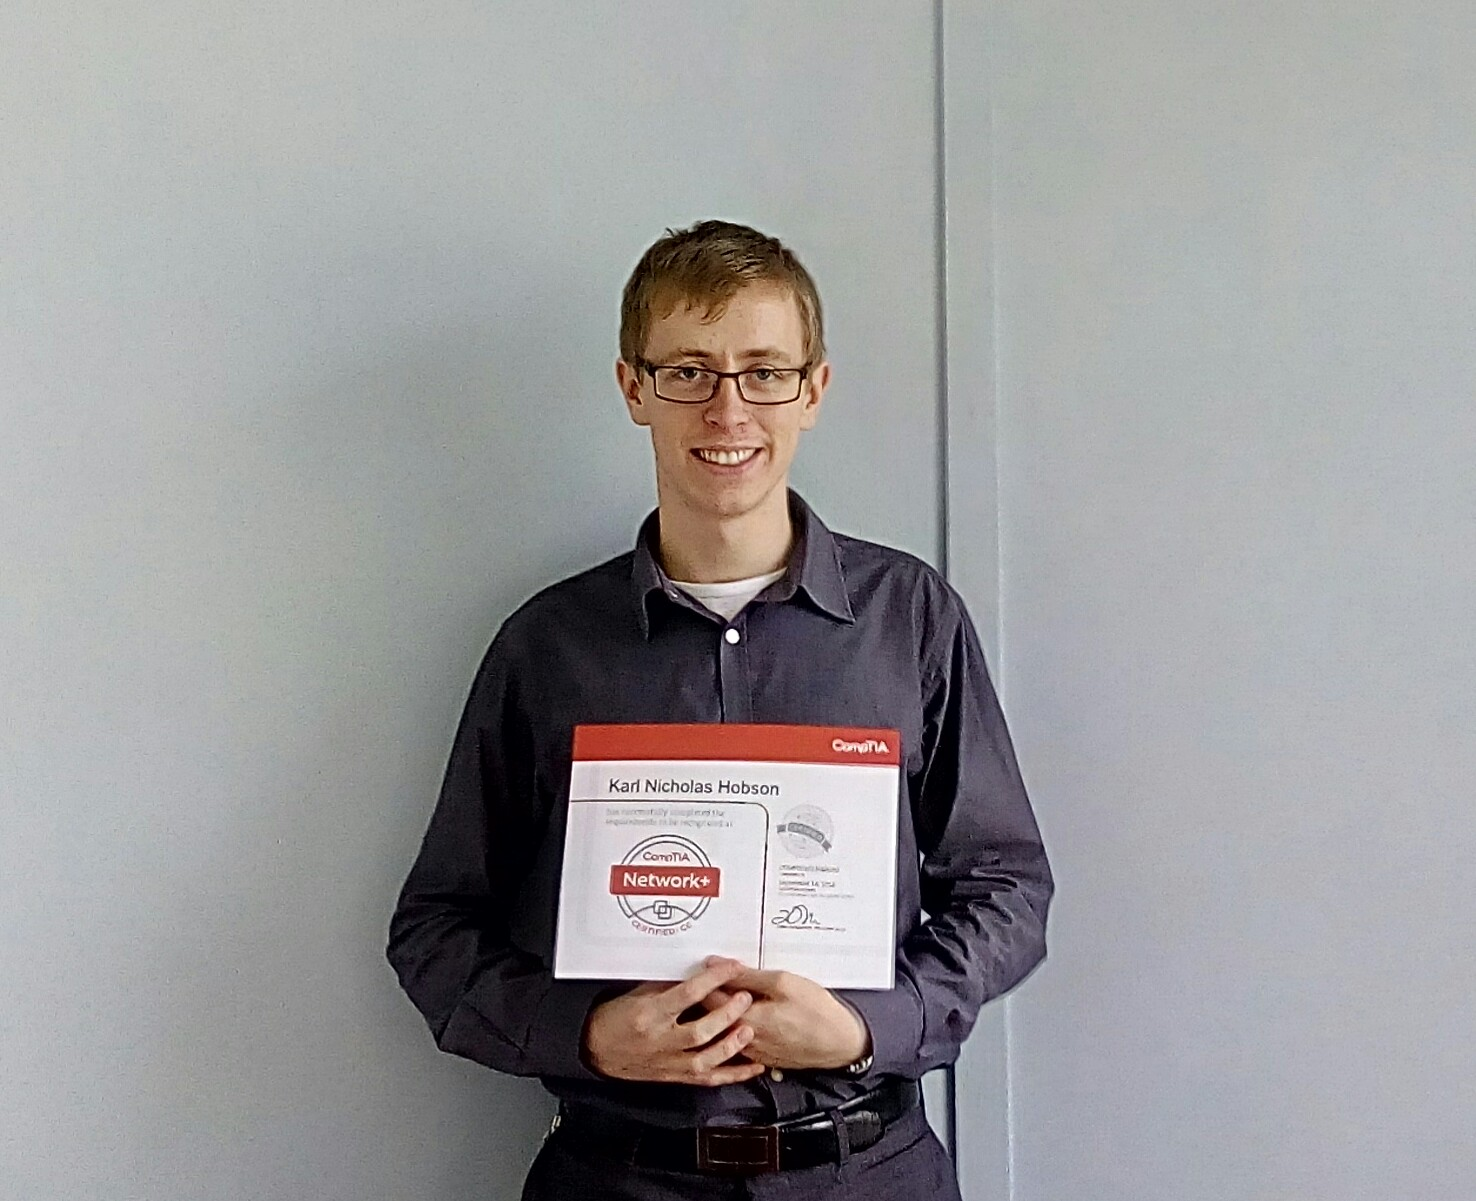 """I'm very happy to   have gained my Network+ qualification and I am looking forward to applying the skills gained from this and also building towards further learning   and qualifications""     –     Karl Hobson  ."